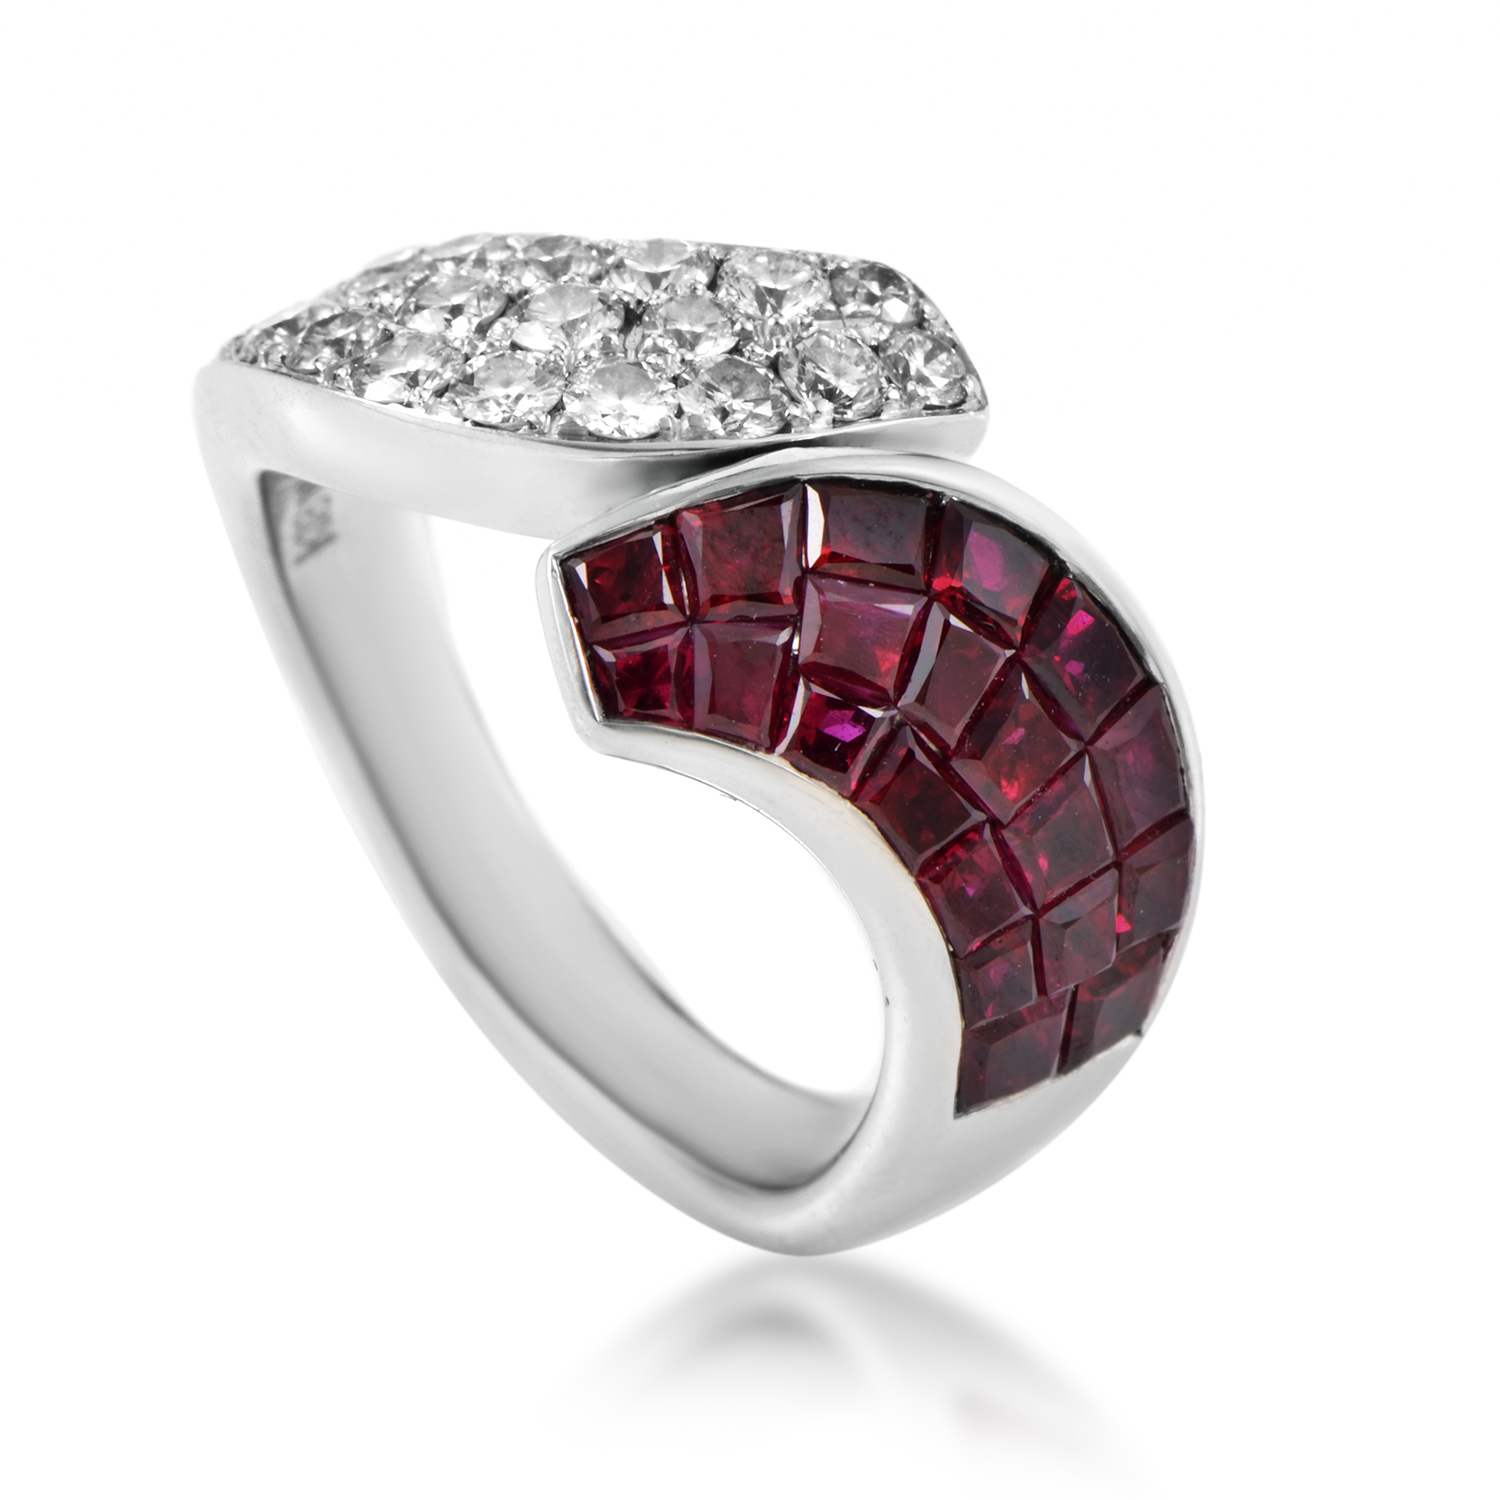 Women's 18K White Gold Diamond & Ruby Ring MFC06-061316